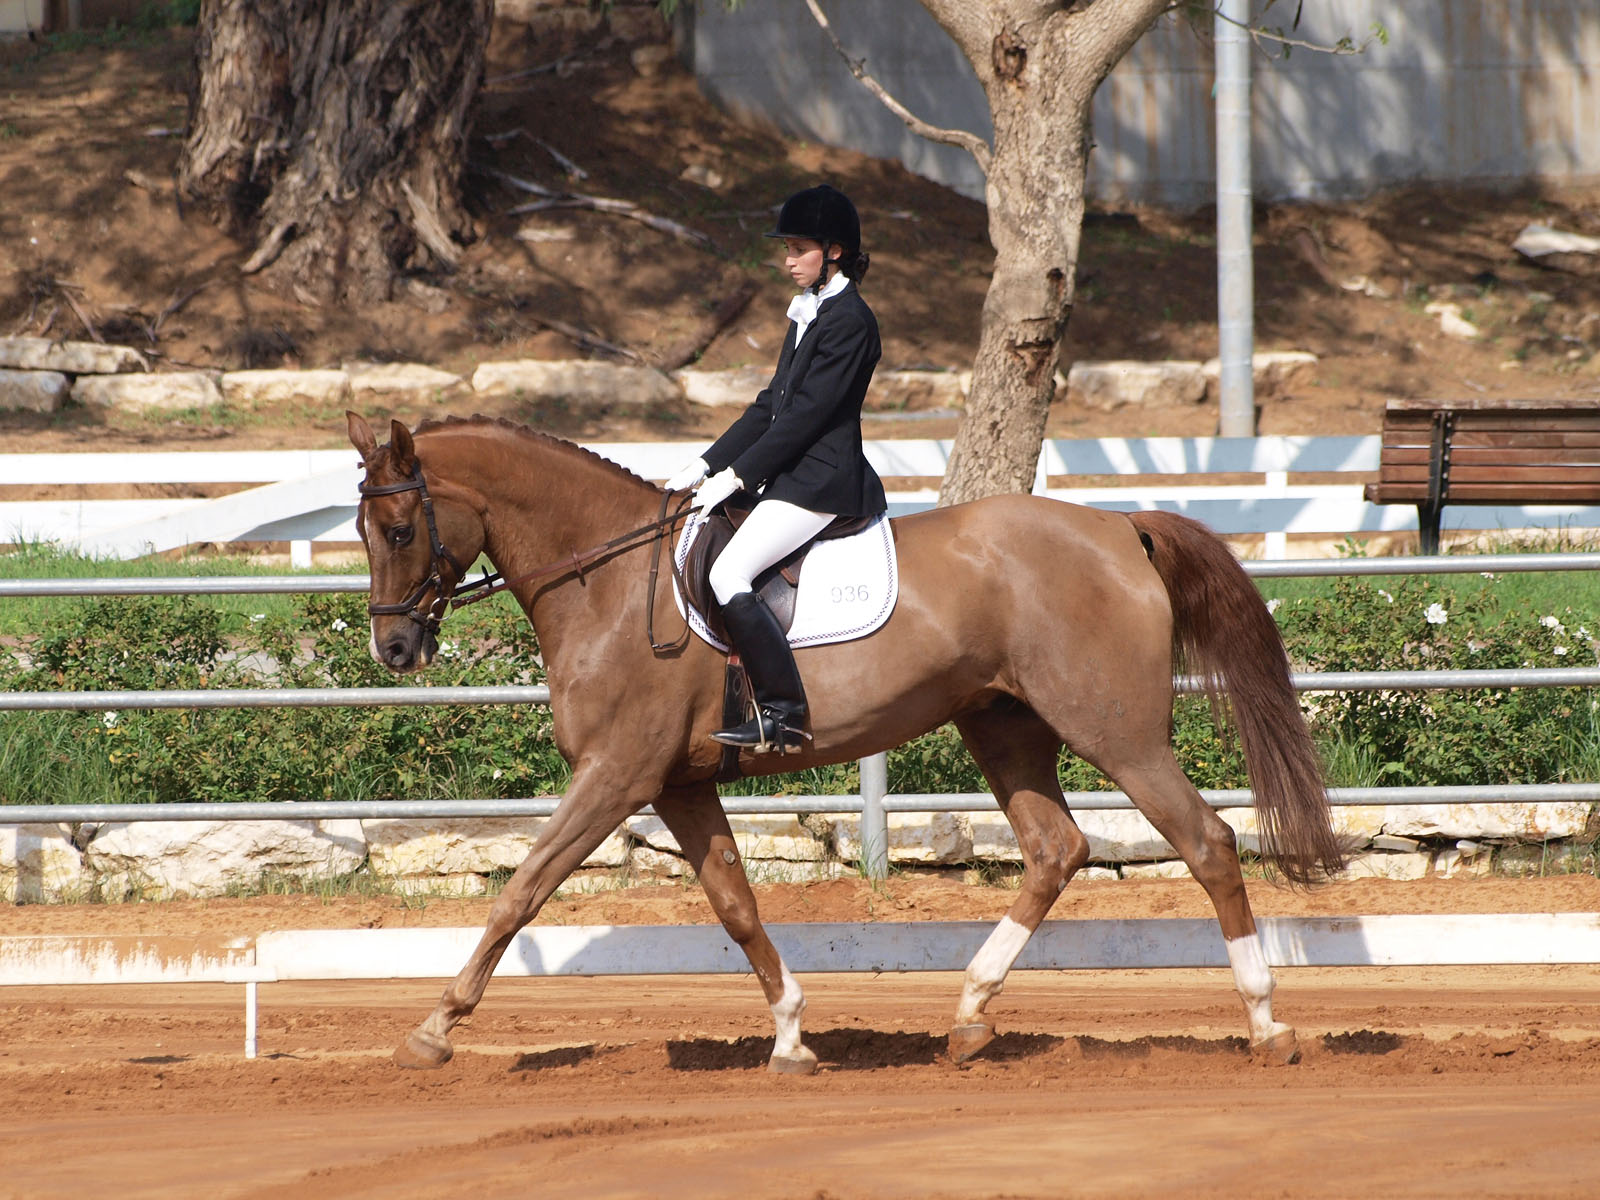 File:Dressage Competition Horse Rider.JPG - Wikimedia Commons